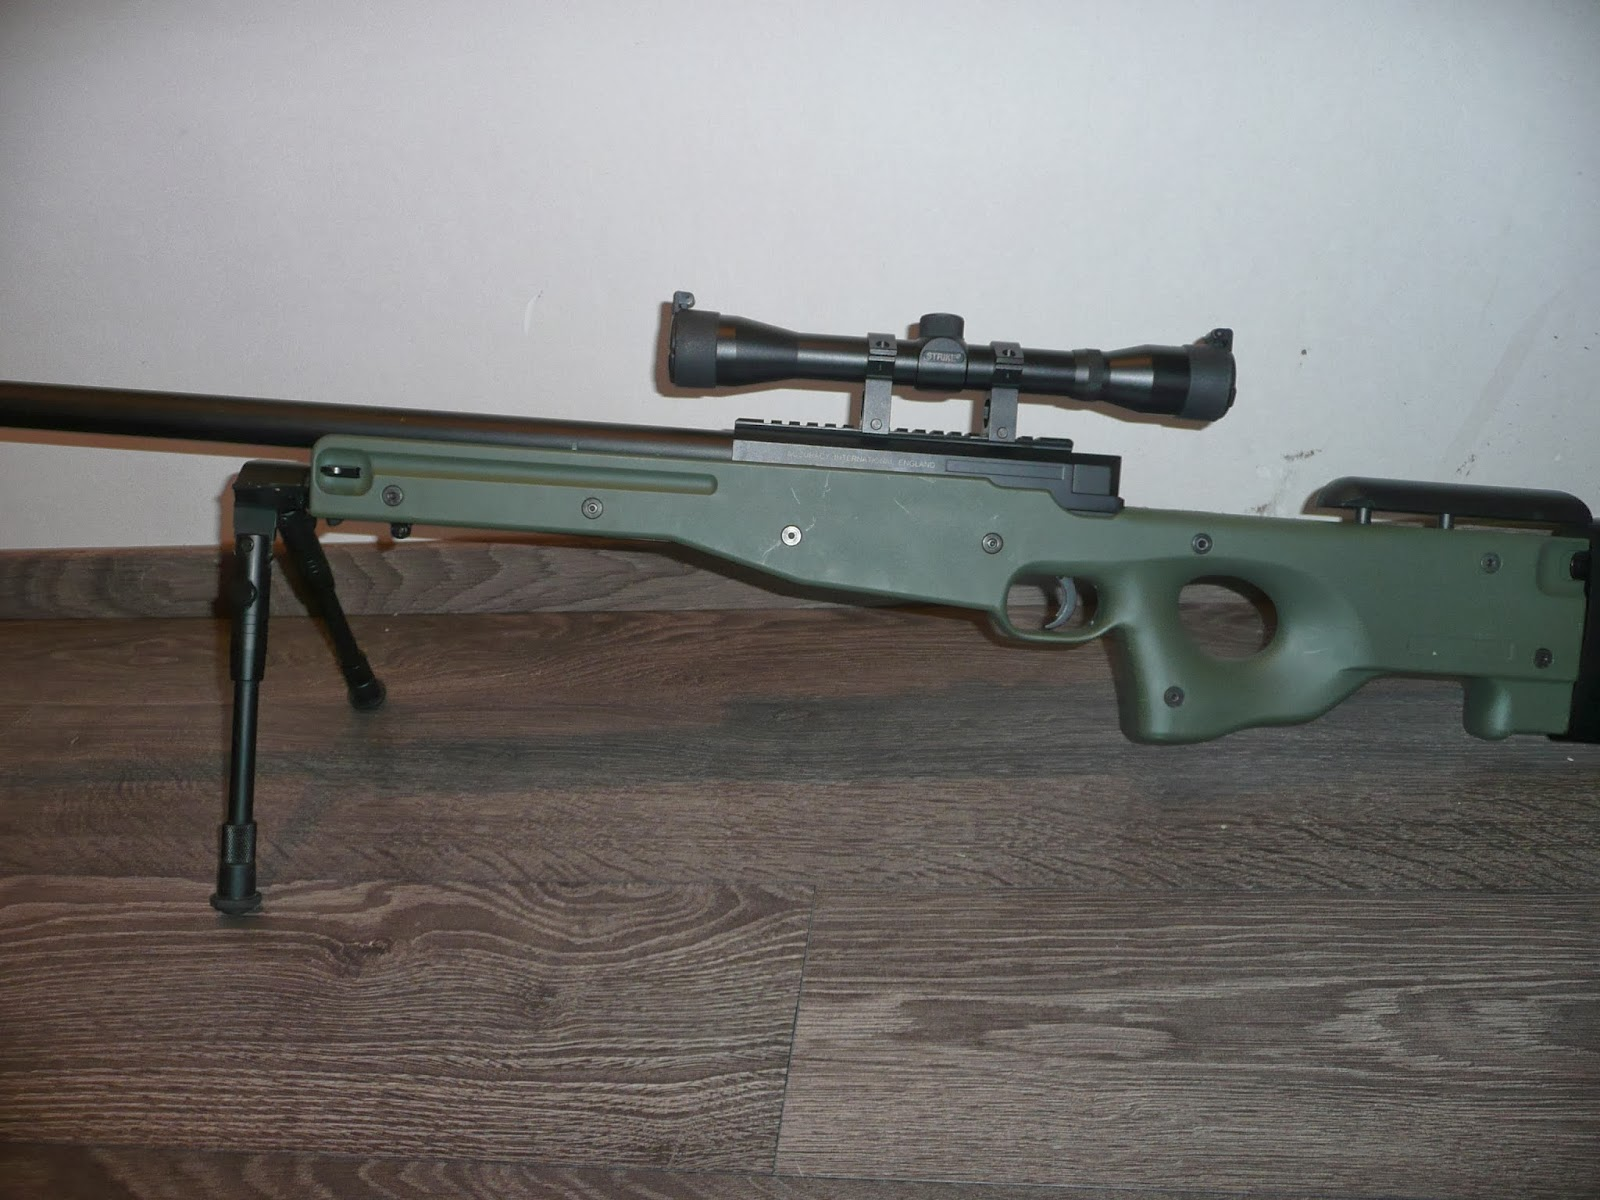 delta force belgium: Painted my .308 sniper, looks more ...